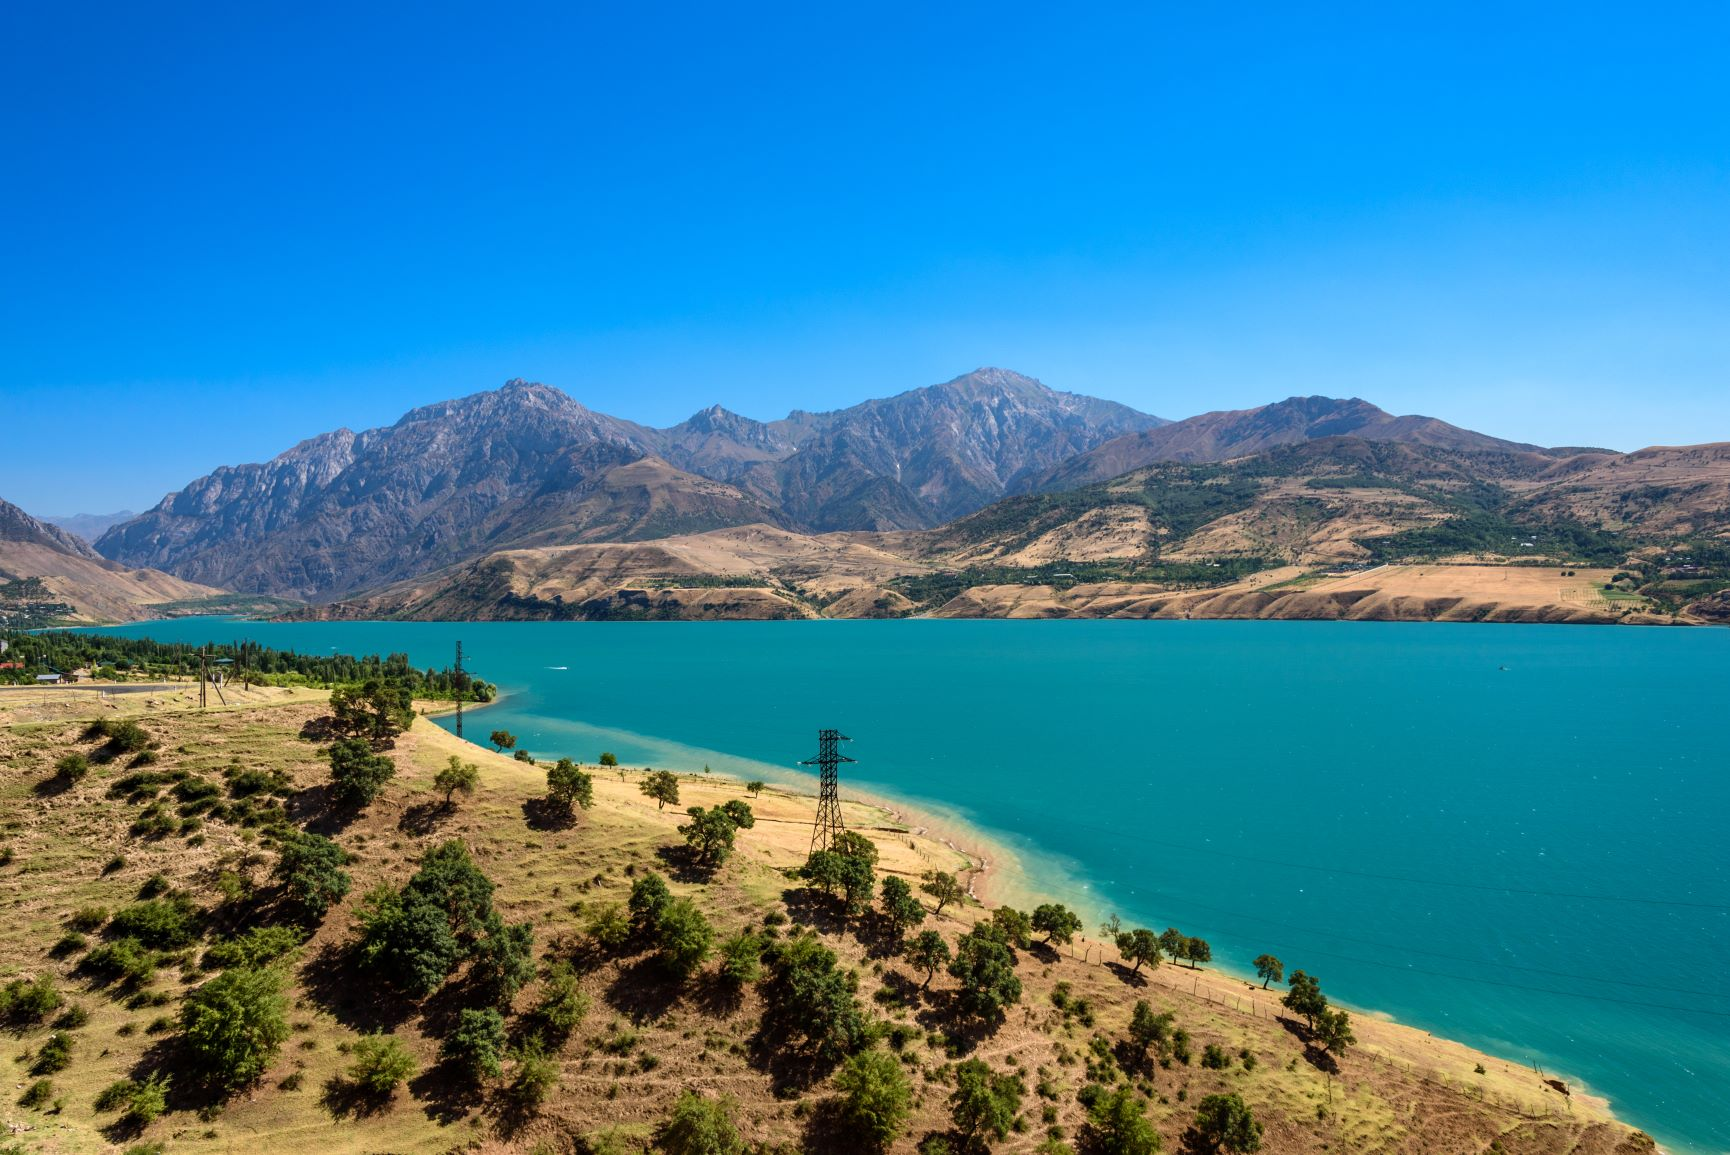 Panoramic view of Lake Charvak, a huge artificial reservoir created by erecting a stone dam on the Chirchiq River - 